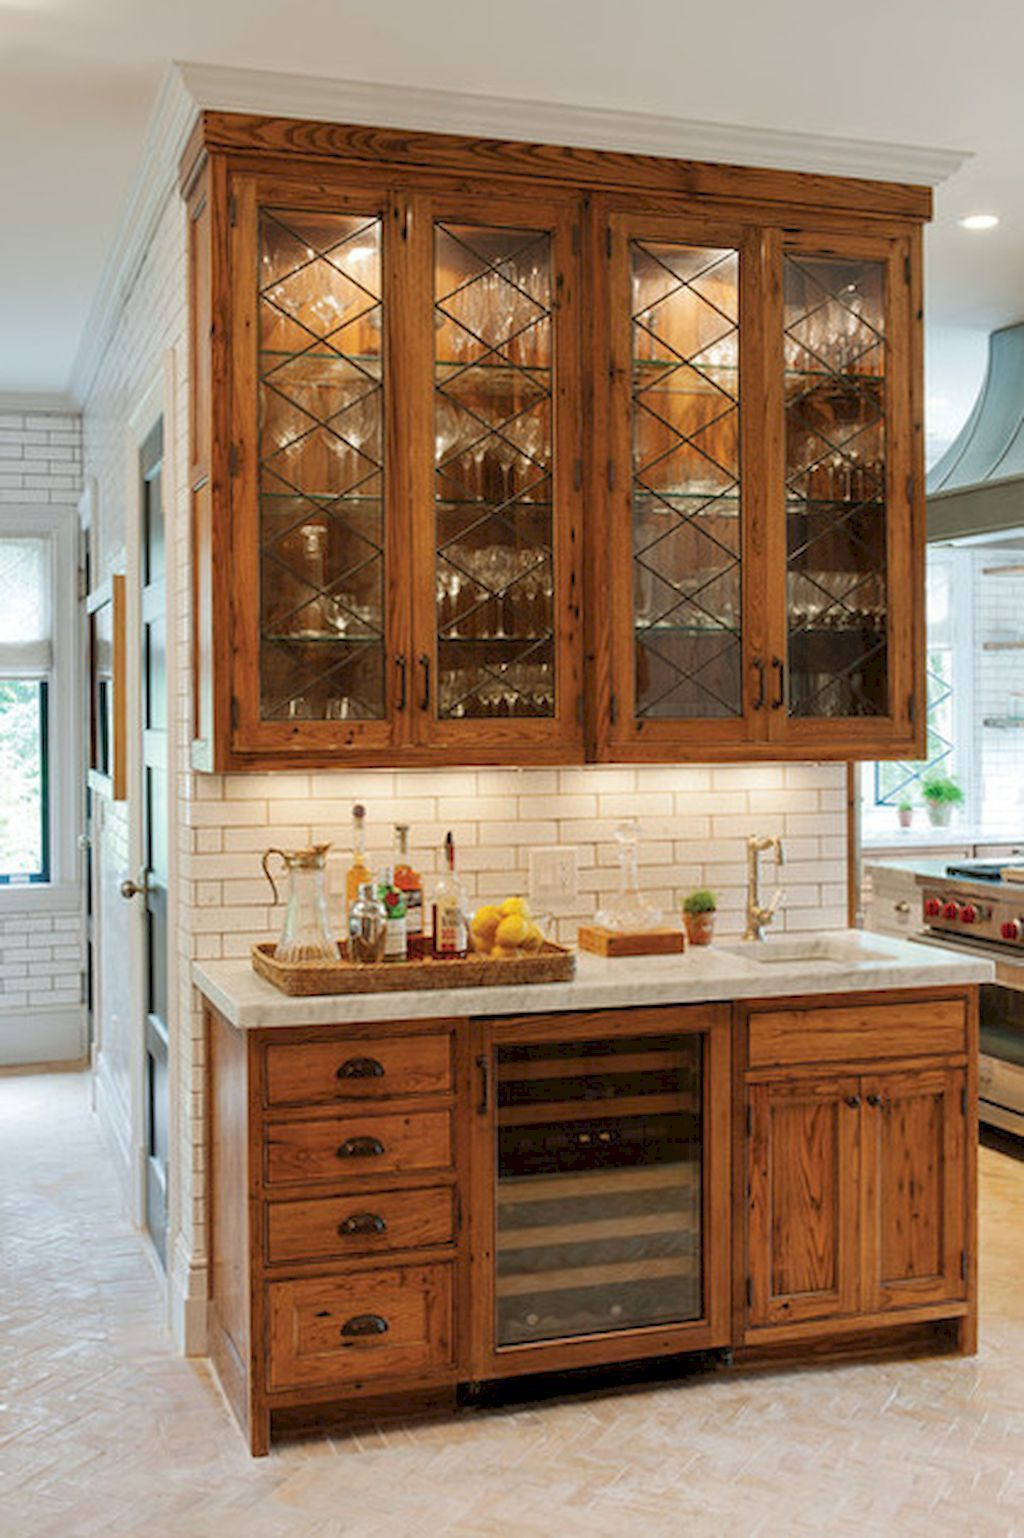 Rustic Kitchen Ideas There S A Particular Warmth As Well As Appeal To A Rustic Kitchen As We Rustic Kitchen Cabinets Kitchen Renovation New Kitchen Cabinets